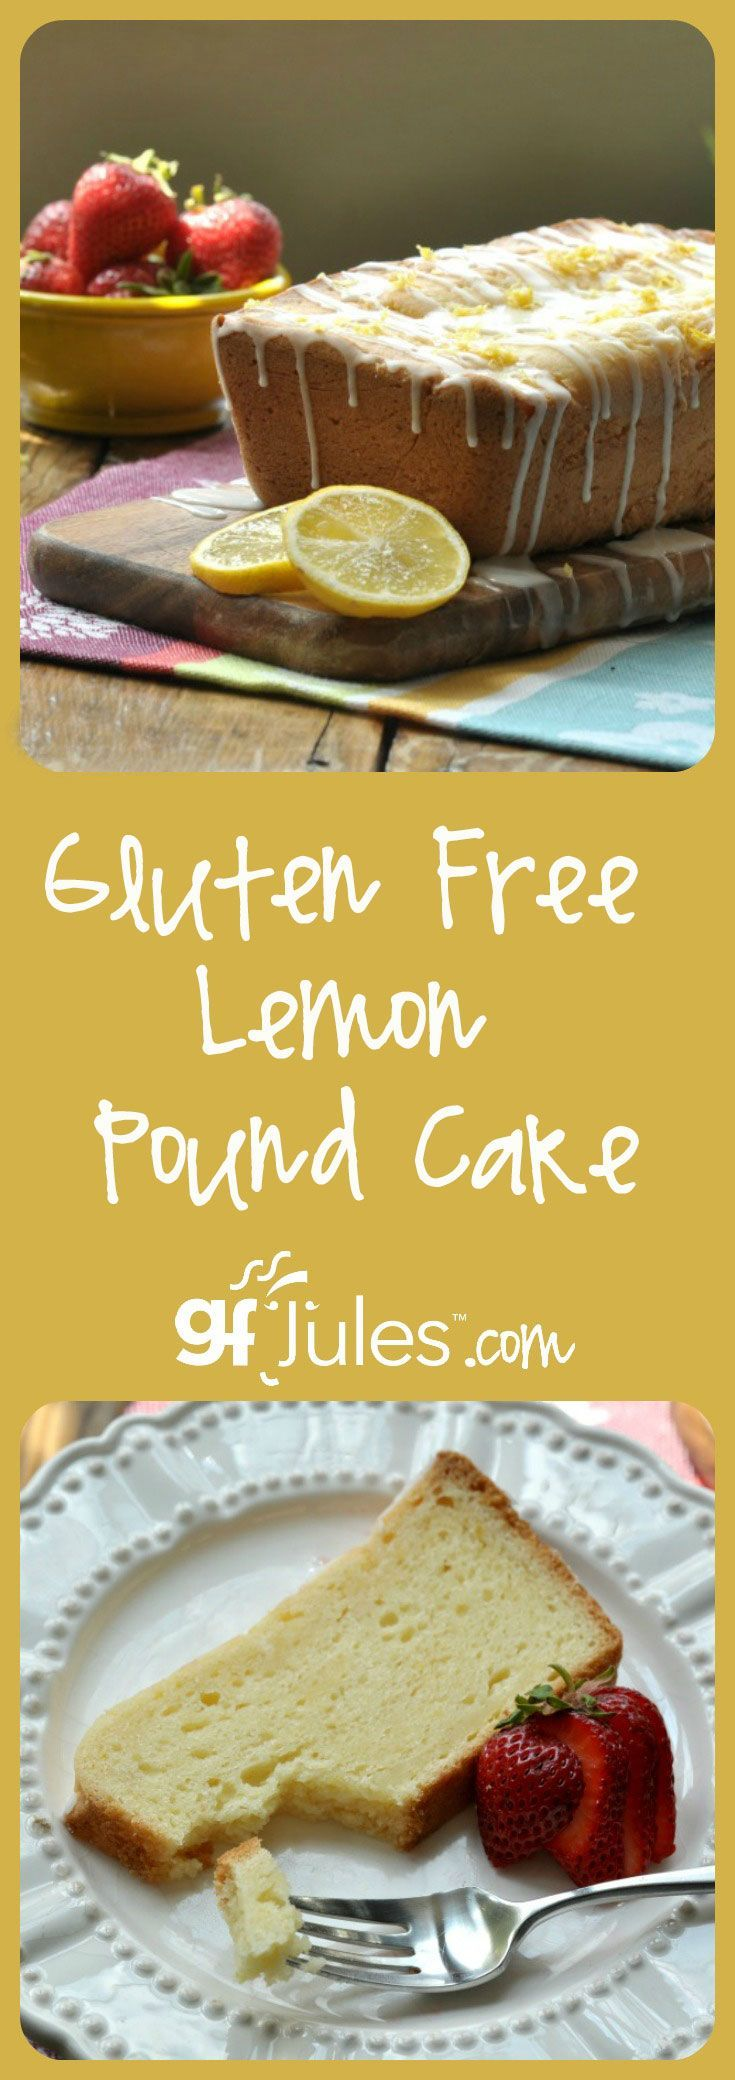 This light and airy Gluten-Free Lemon Pound Cake is the absolute perfect springtime recipe! | gfJules.com Dairy-free too!